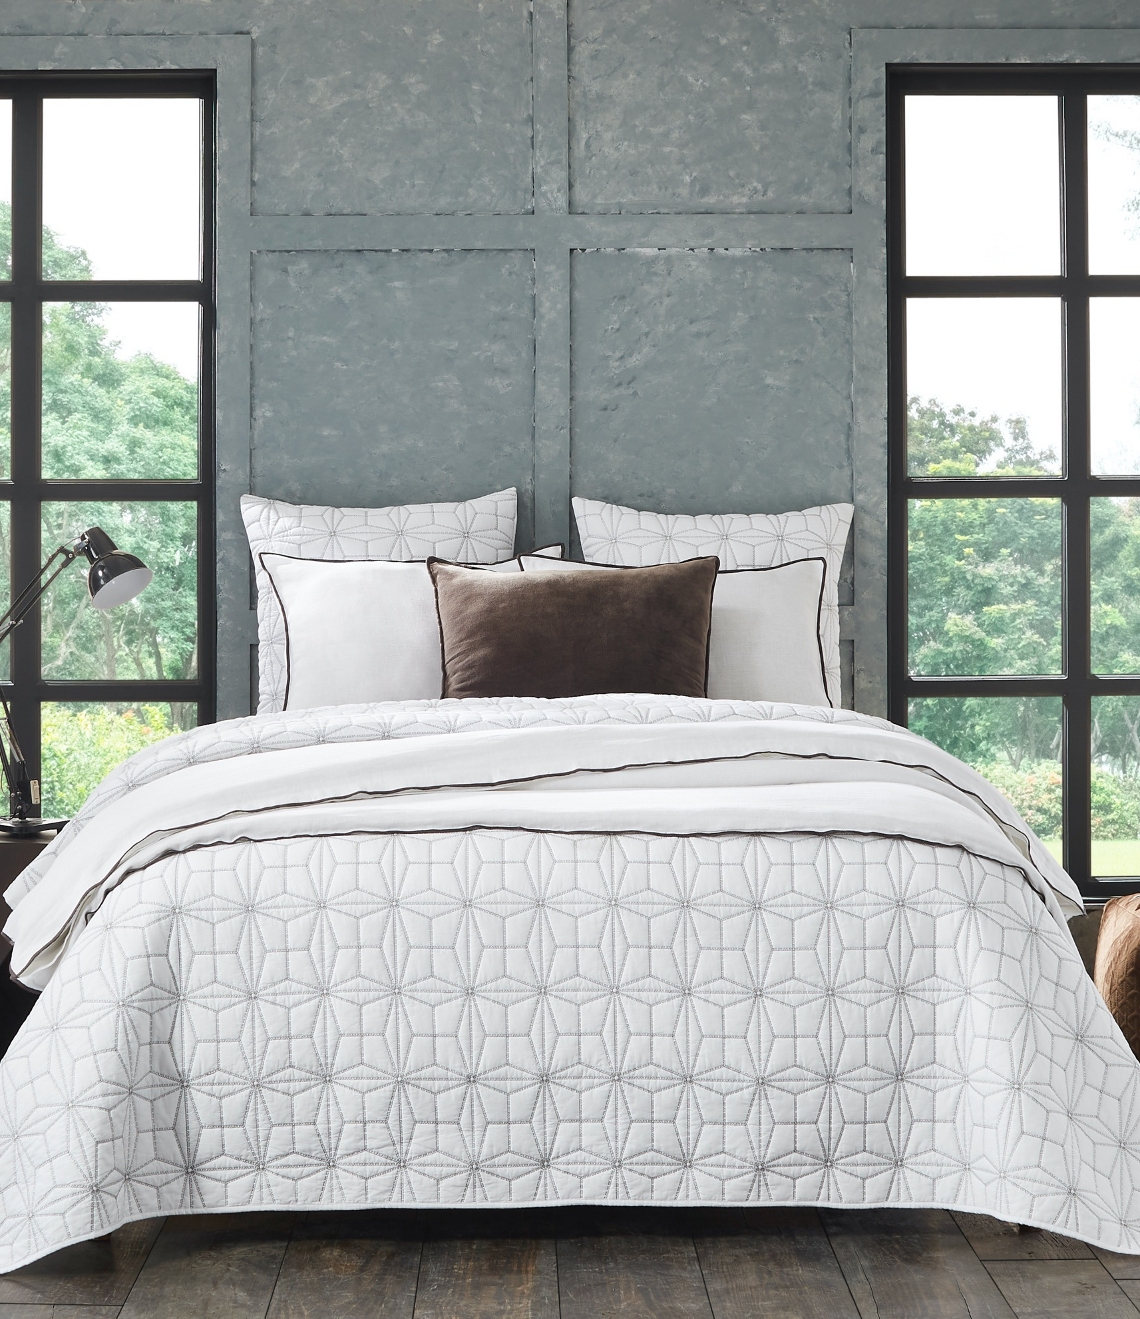 Victoria & Tyne bed by Amity Home